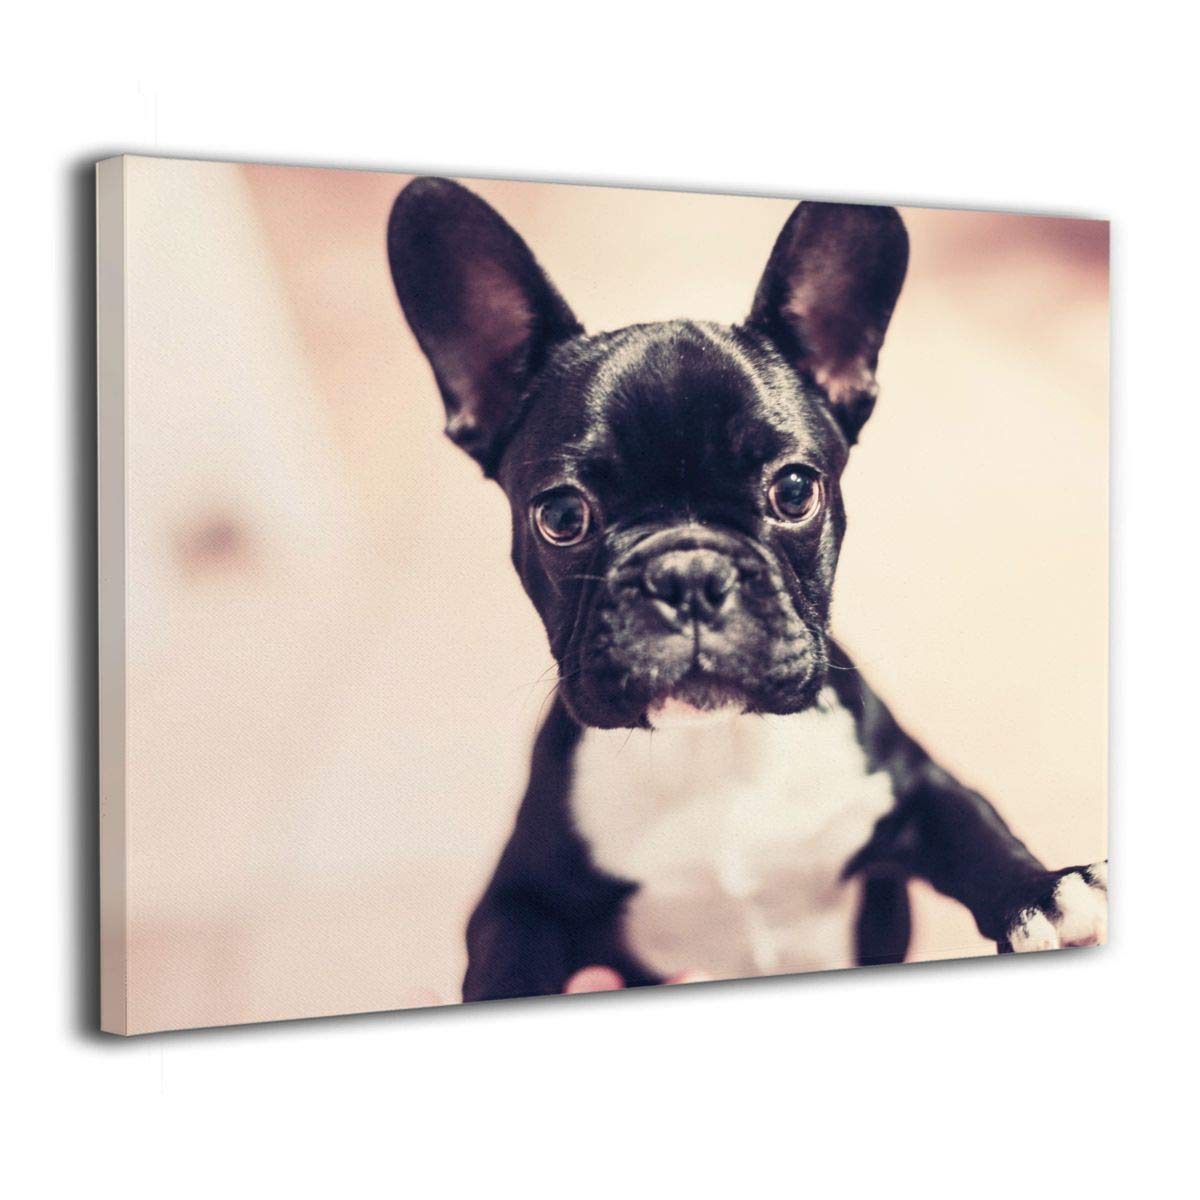 BLI Cute French Bulldog Home Decor Canvas Painting 16x20 Inch Kitchen Decorations Wall Picture Abstract Artwork for Bathroom Living Anywhere